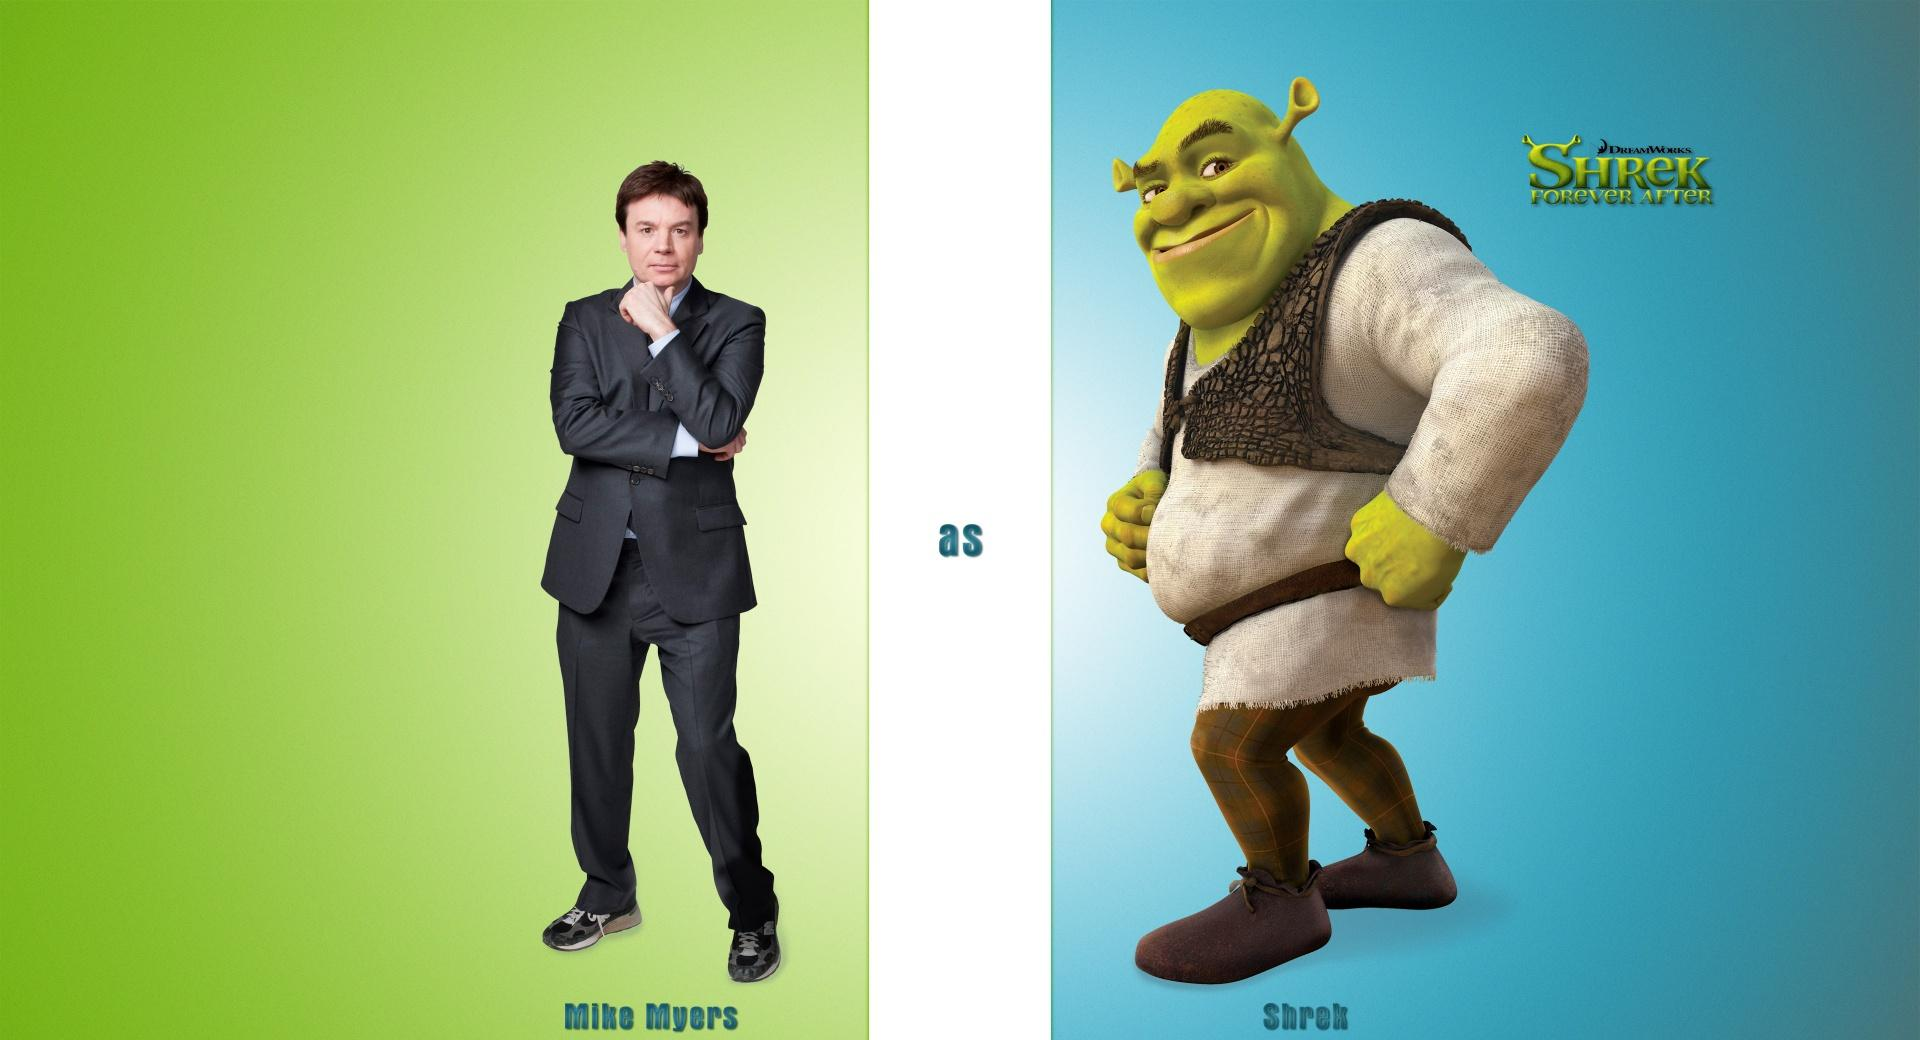 Mike Myers as Shrek, Shrek Forever After wallpapers HD quality